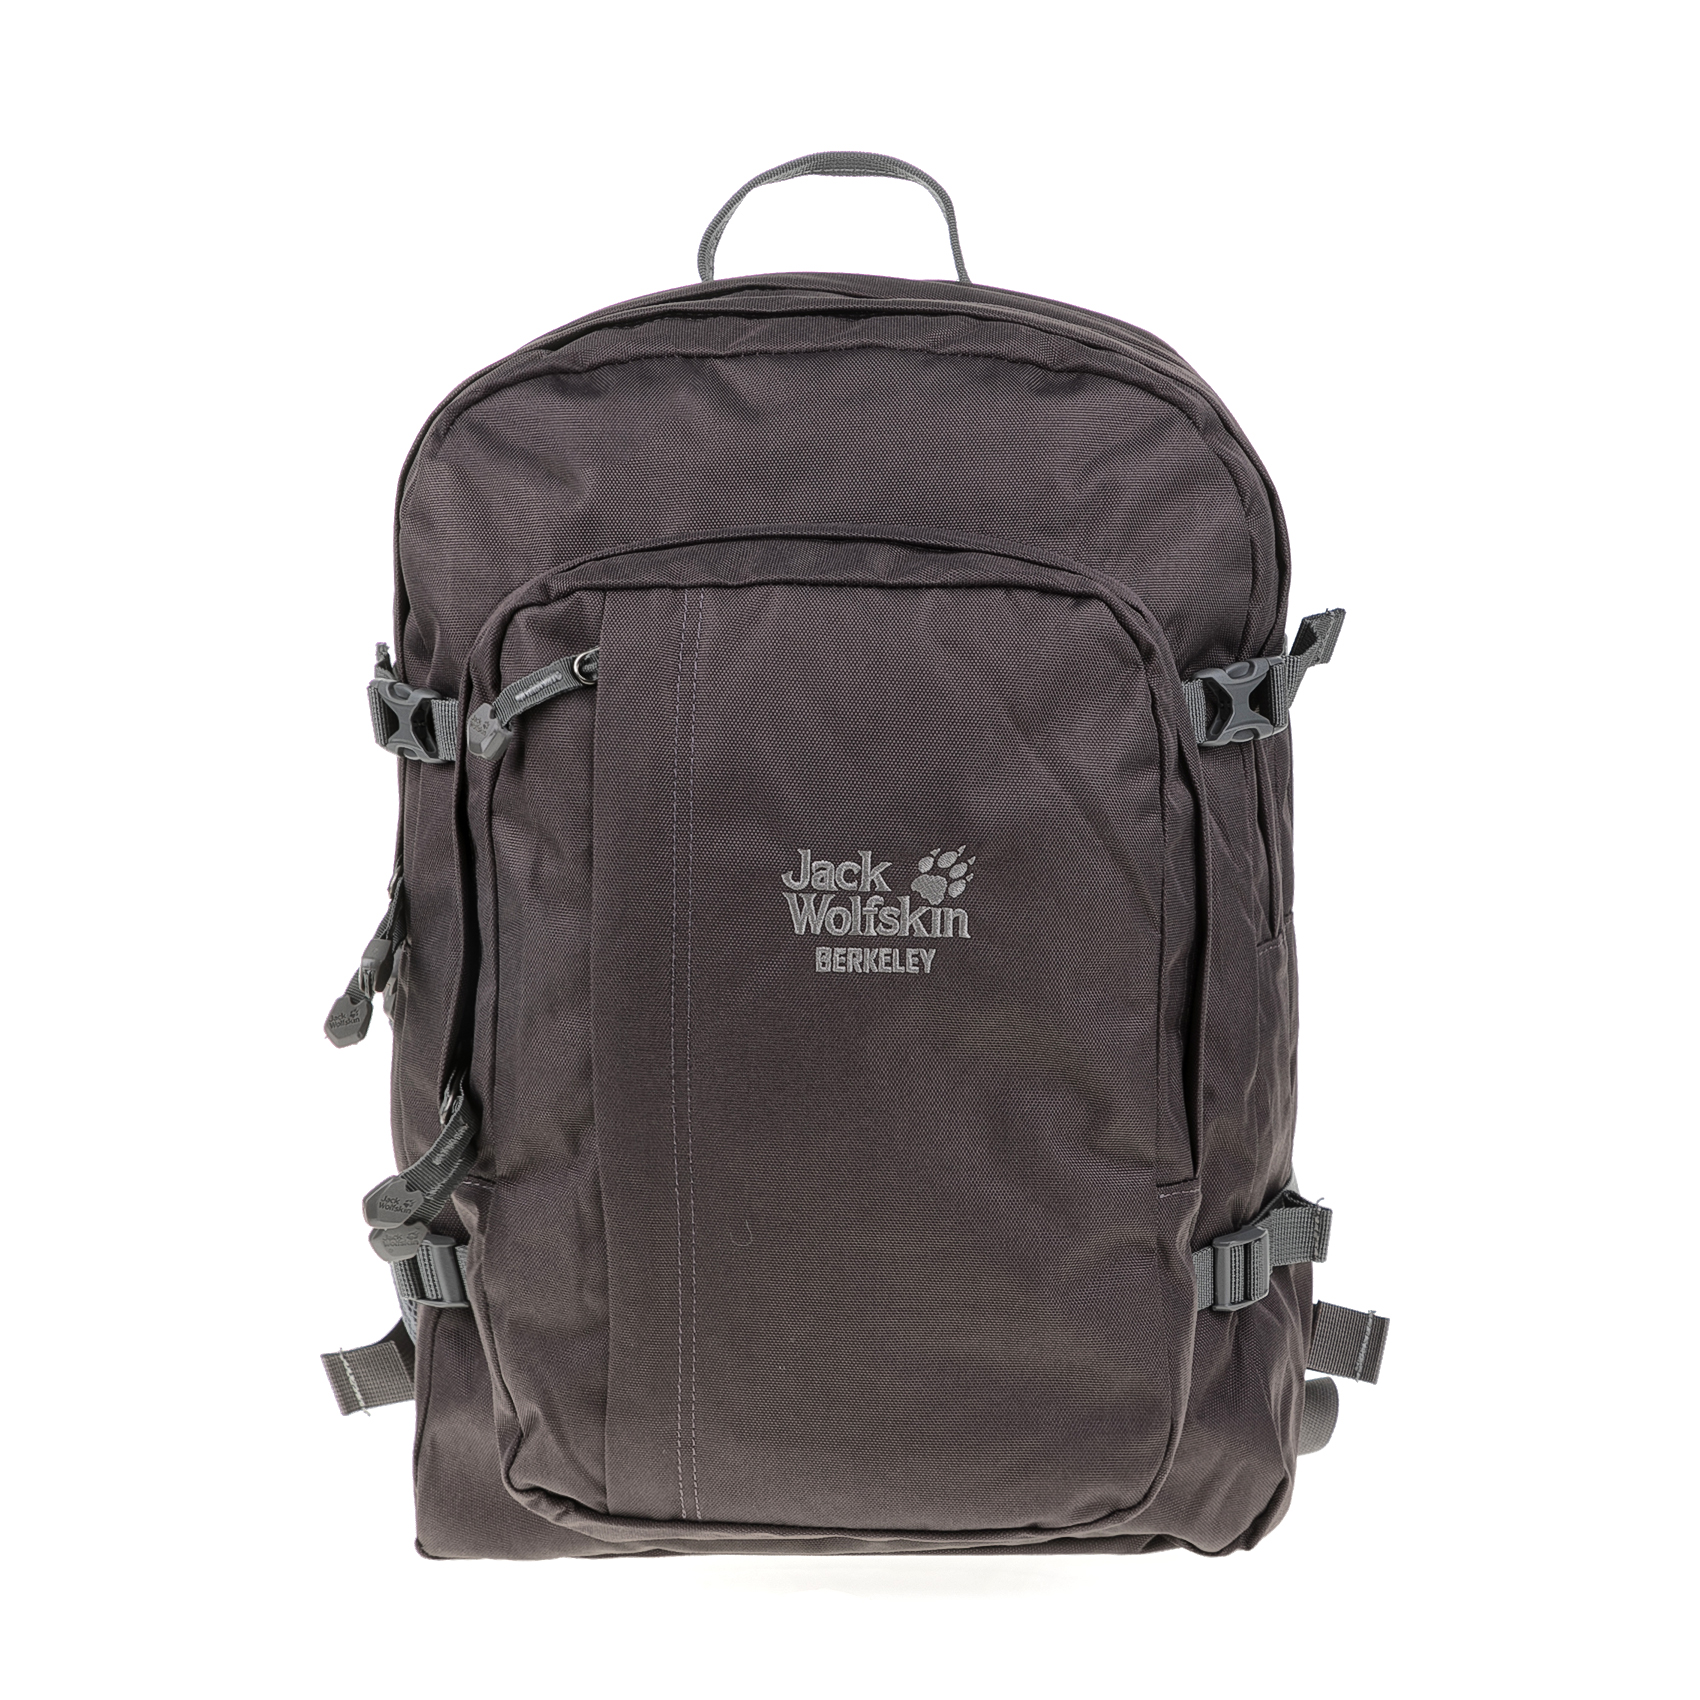 JACK WOLFSKIN – Σακίδιο πλάτης BERKELEY DAYPACK EQUIPMENT JACK WOLFSKIN γκρι 1635932.0-7M00